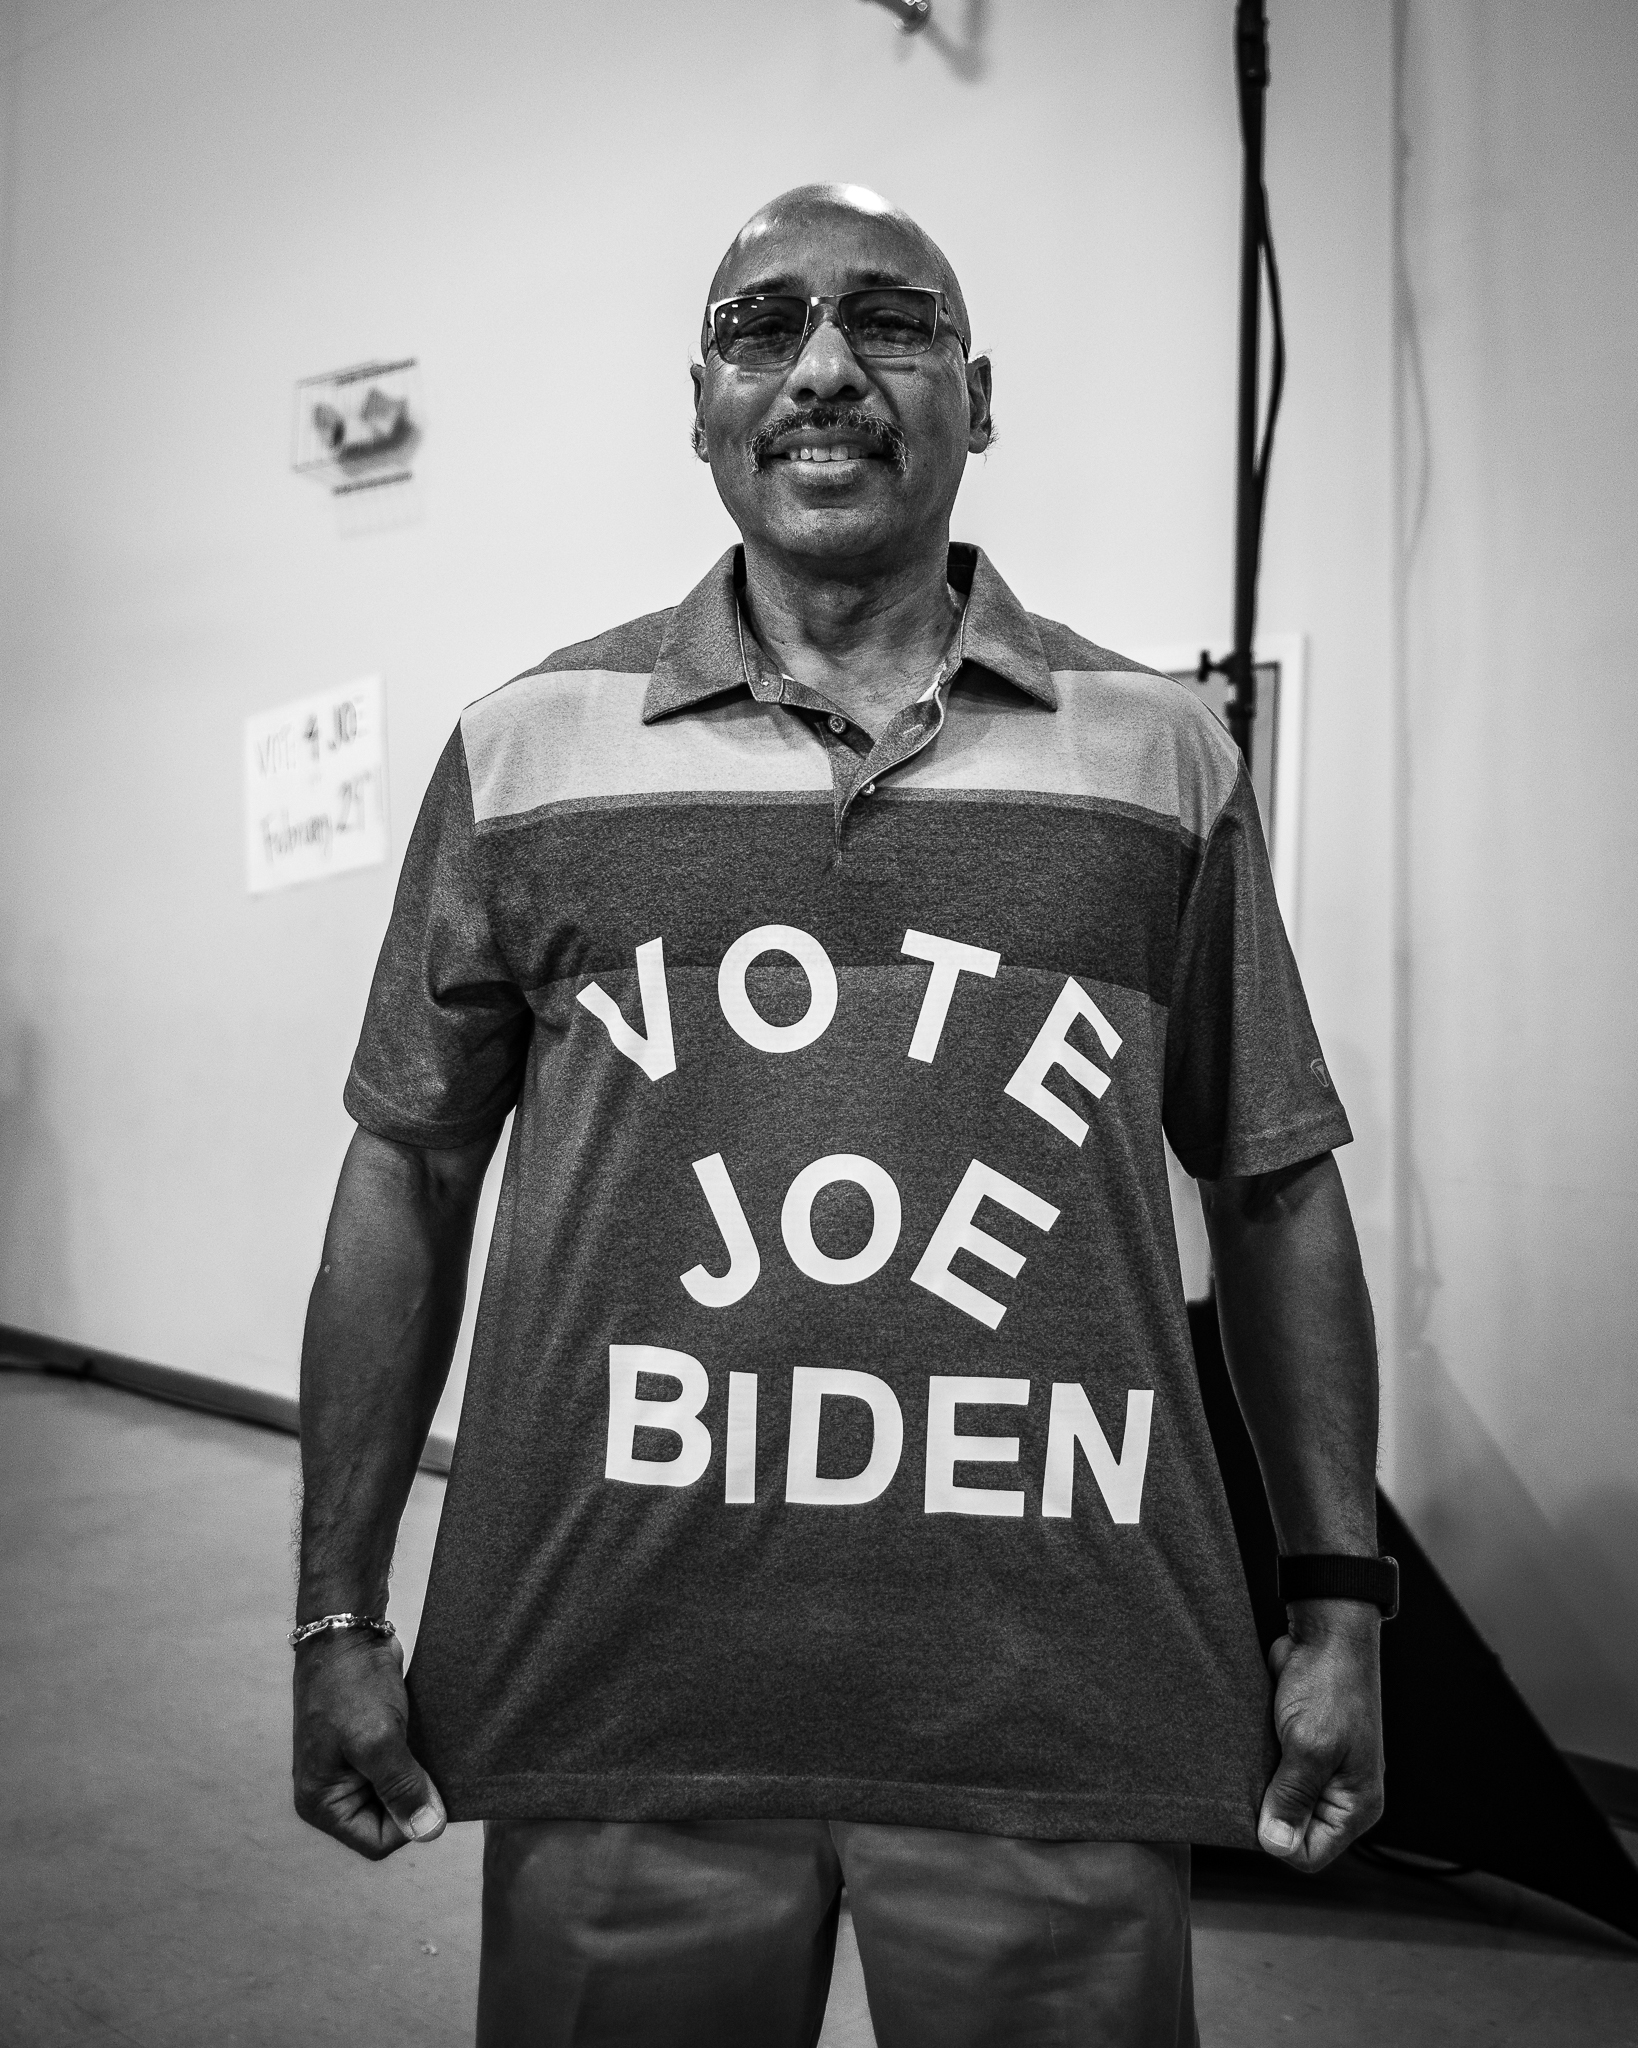 """A Biden supporter poses for a photo with a shirt that reads """"Vote Joe Biden"""" in Sumter, South Carolina. February 28, 2020. Photo Lance Monotone."""